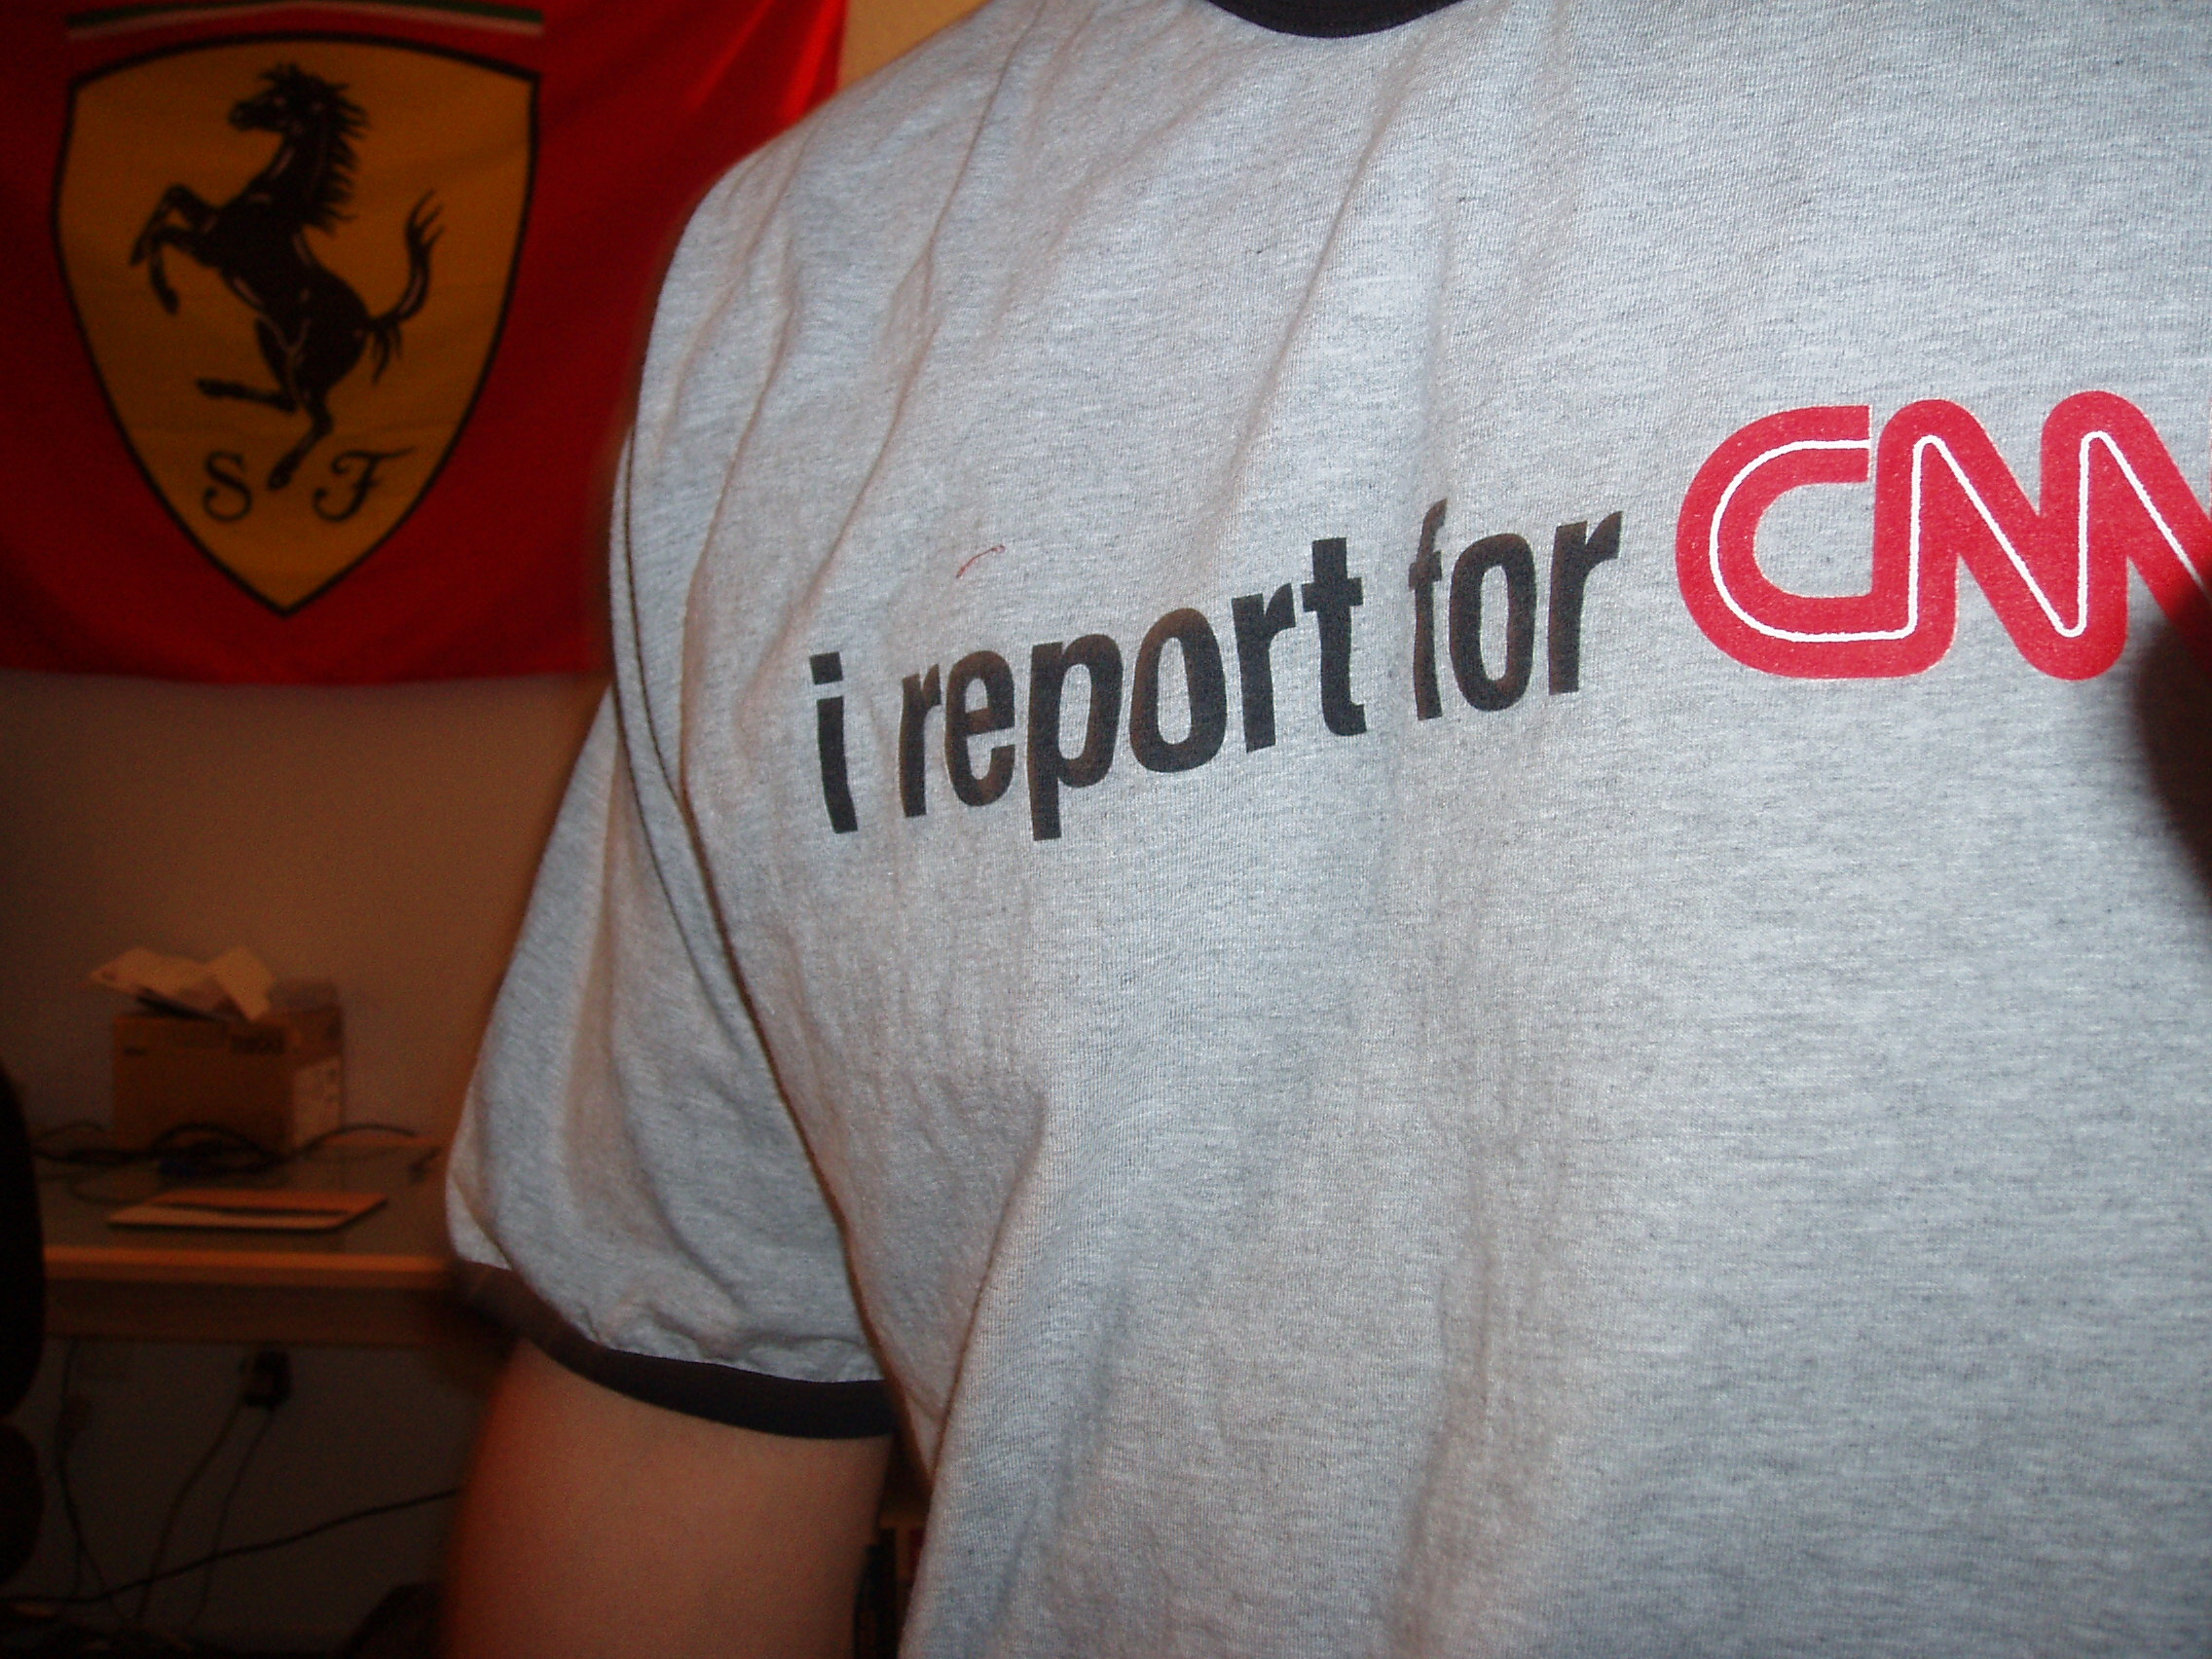 I Report for CNN